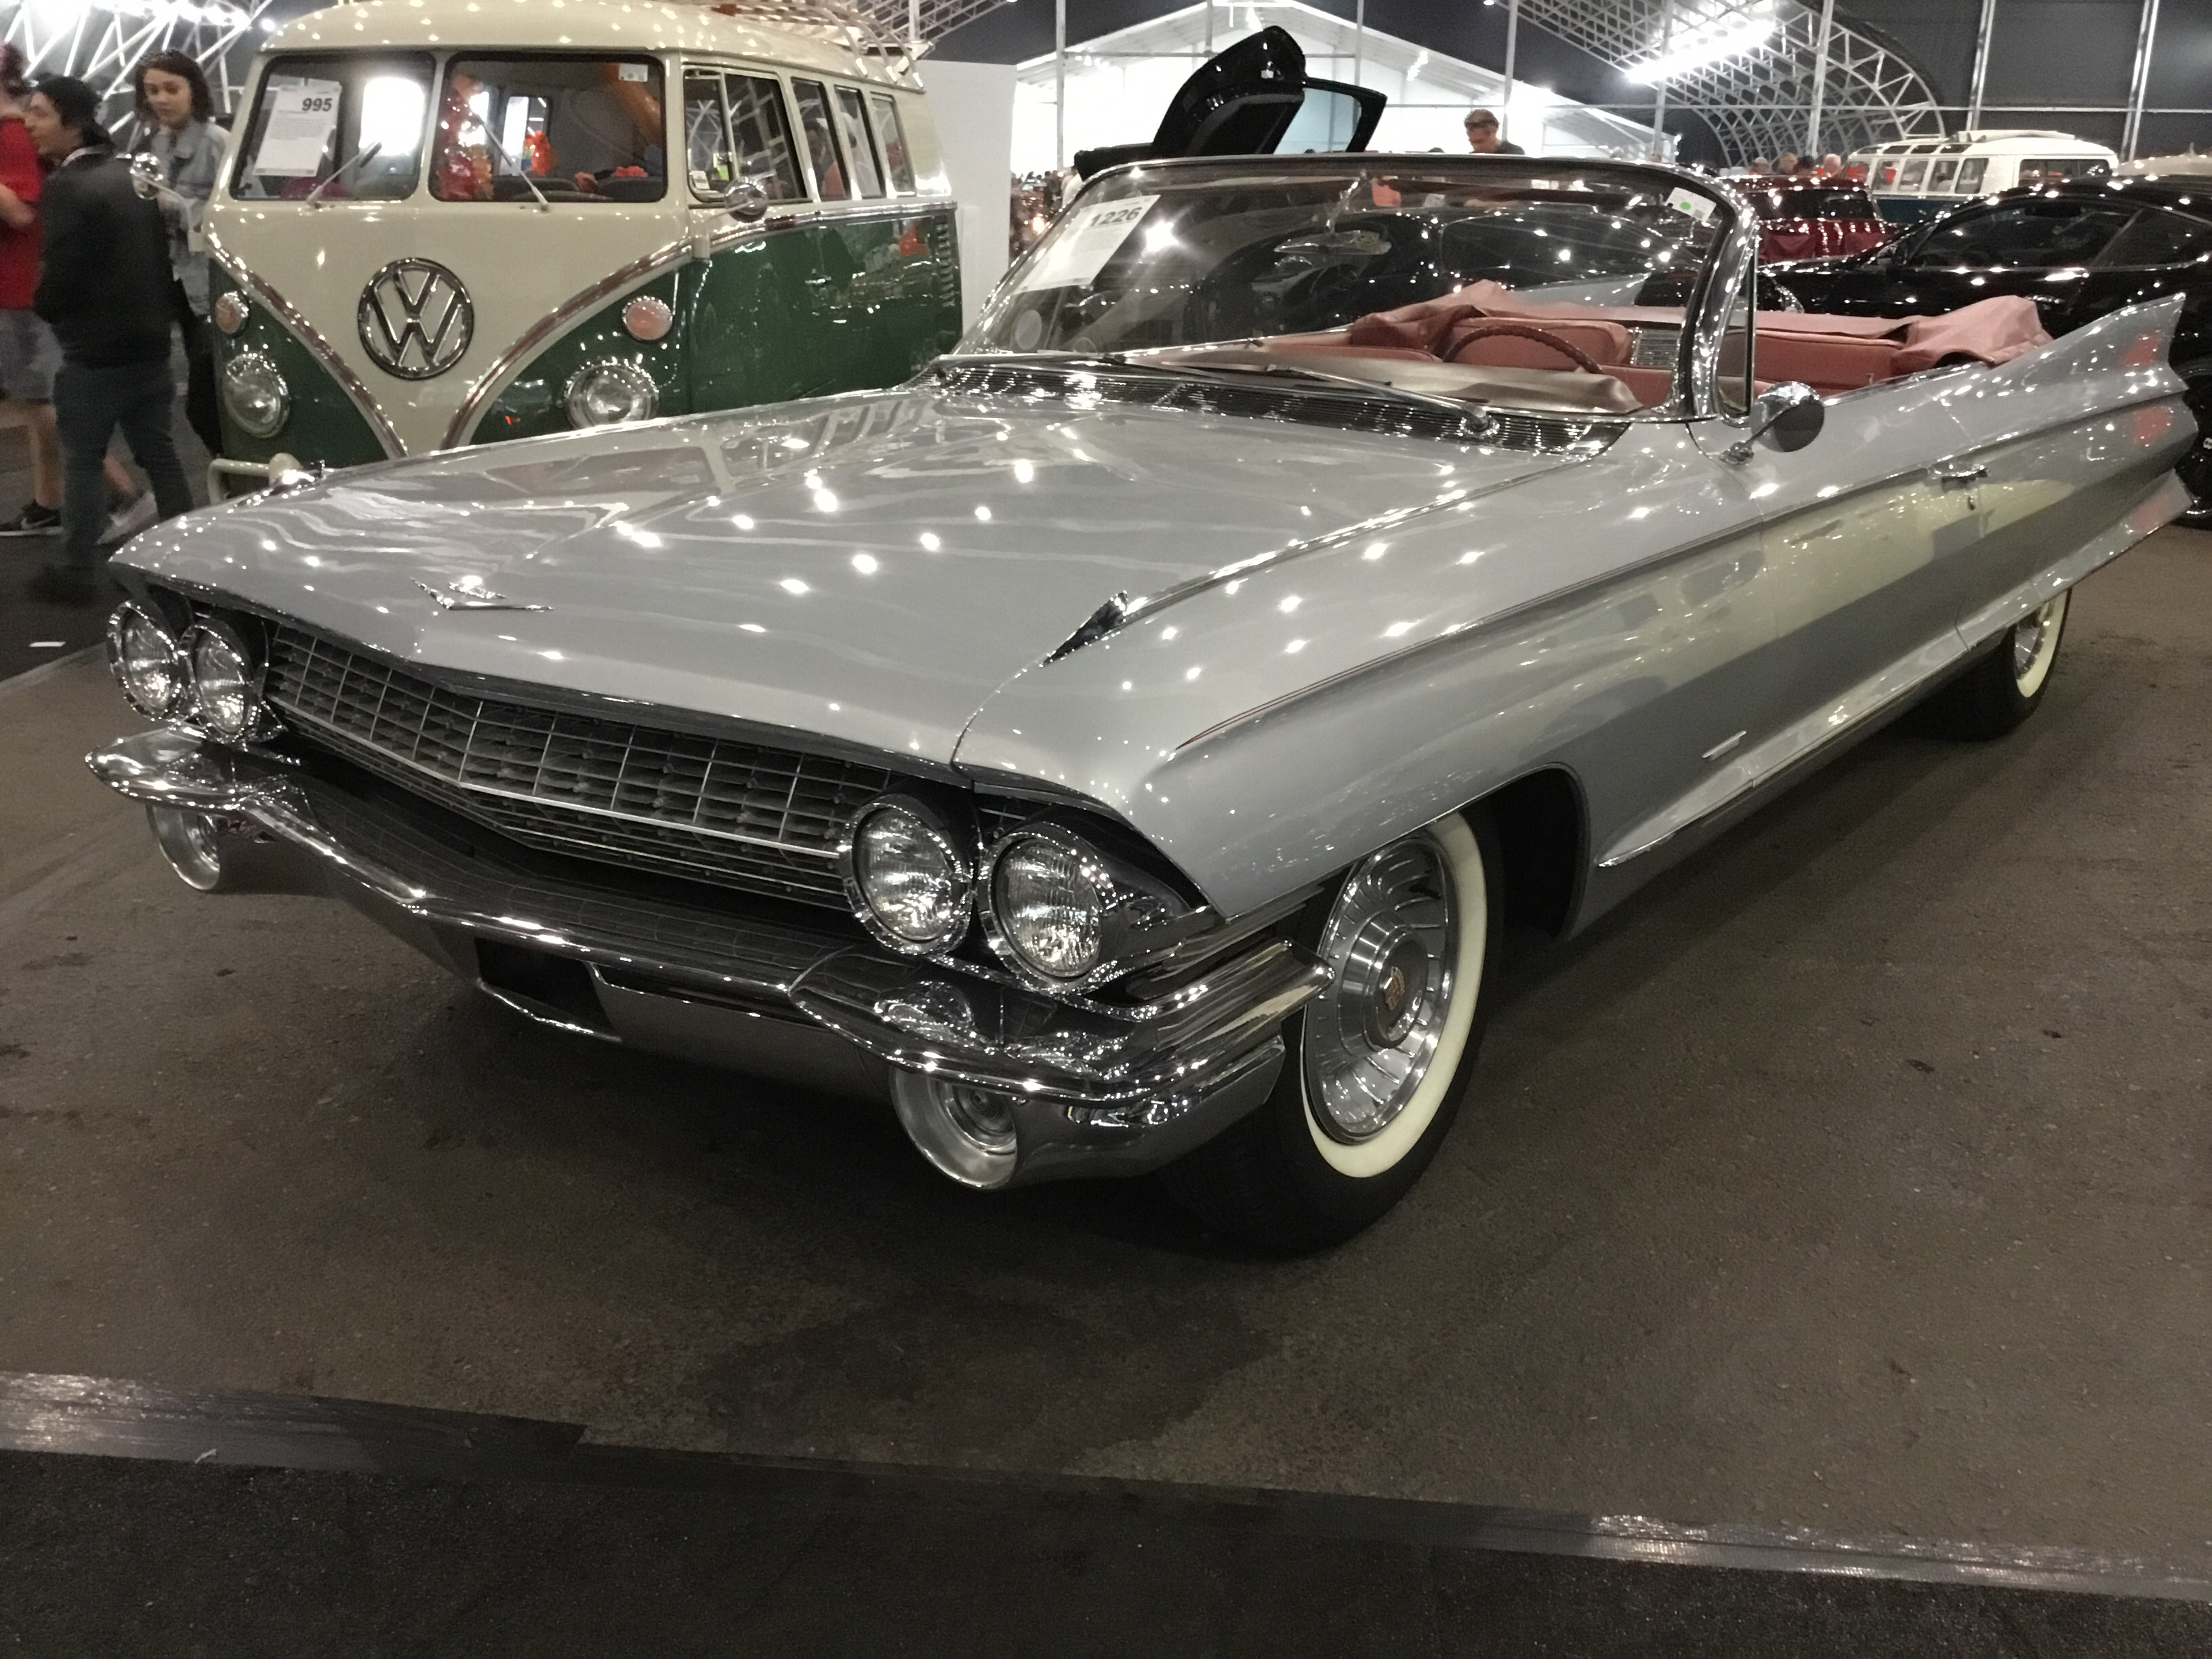 1961 Cadillac Series 62 Values Hagerty Valuation Tool Fleetwood Engine Convertible